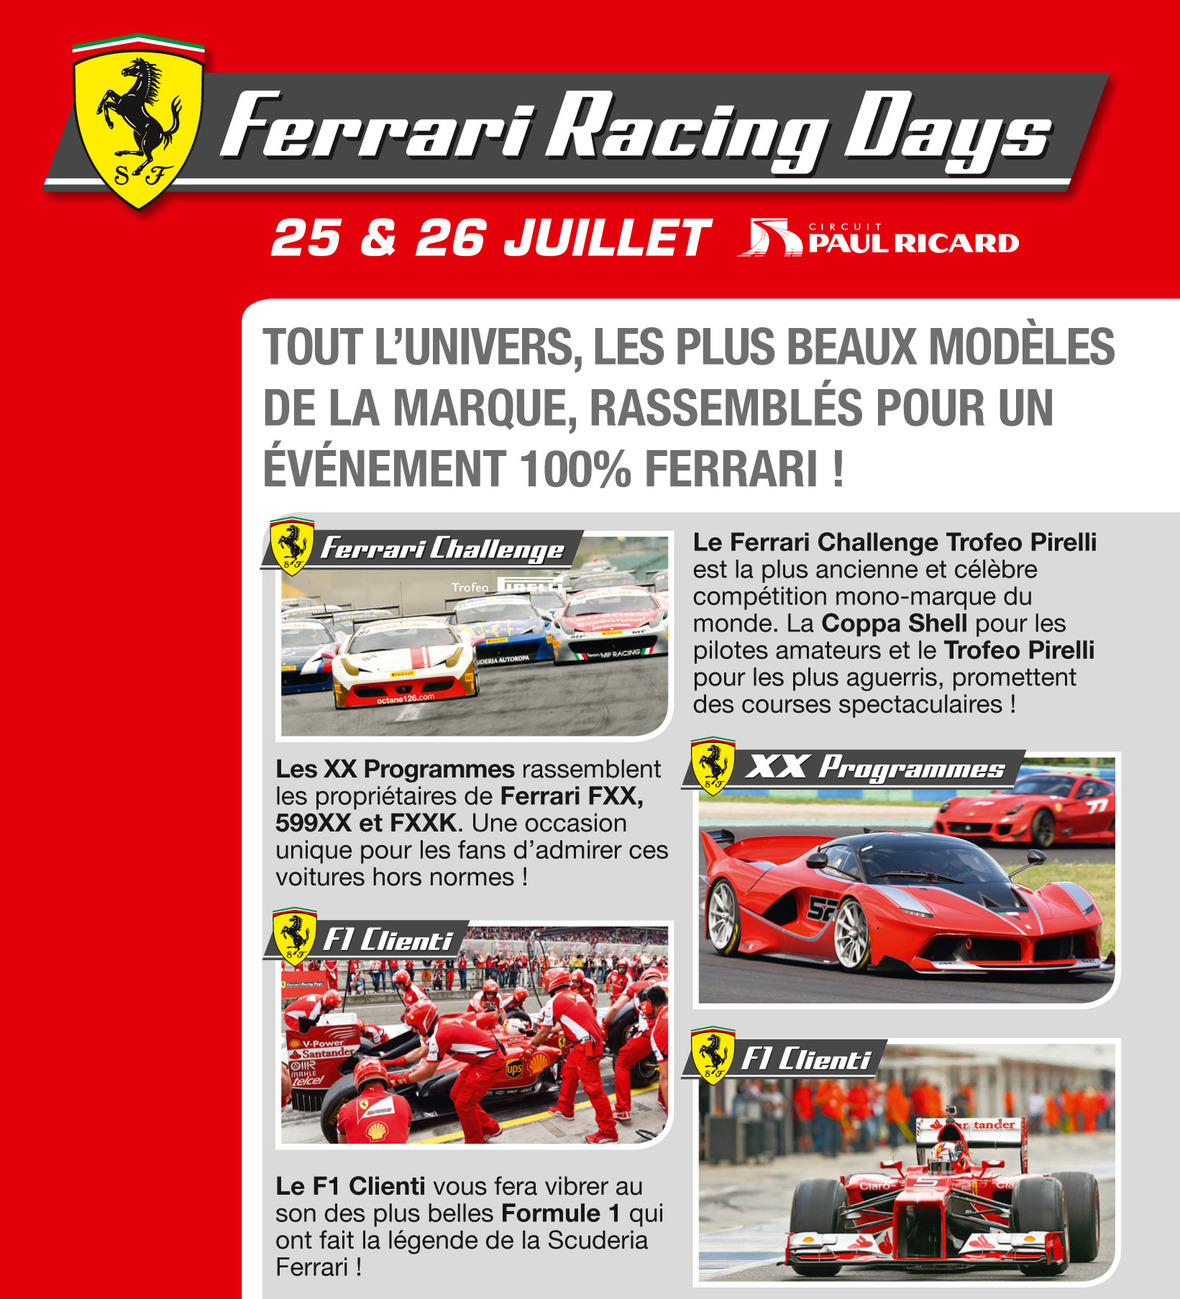 150701 CPR Ferrari Days flyer